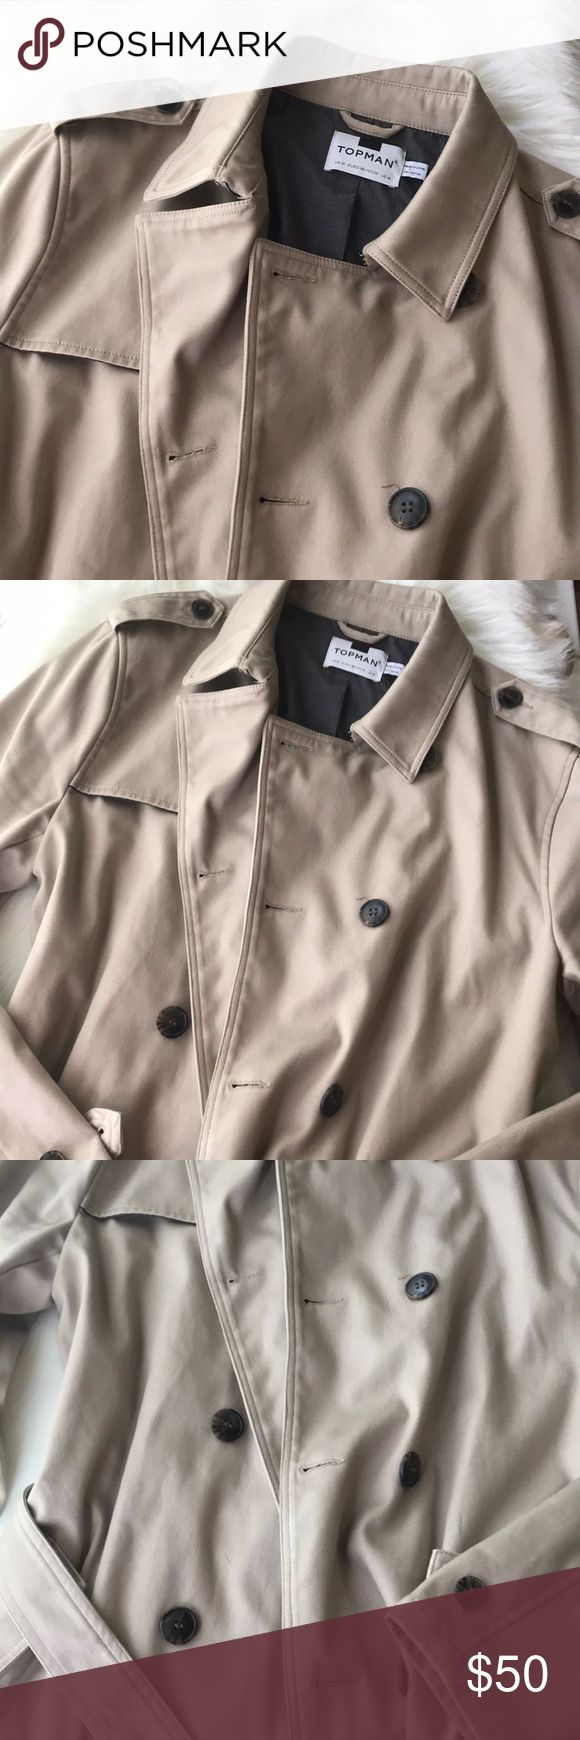 TopMan Trench Coat 🌹🧥 🌹UNISEX  🌹Excellent condition  🌹Size US.M  🌹Adjustable from waist  🌹I ship Monday➡️Saturday  🌹No exchange or returns  🌹All sales are final 🌹Retails for $110+ Topman Jackets & Coats Trench Coats